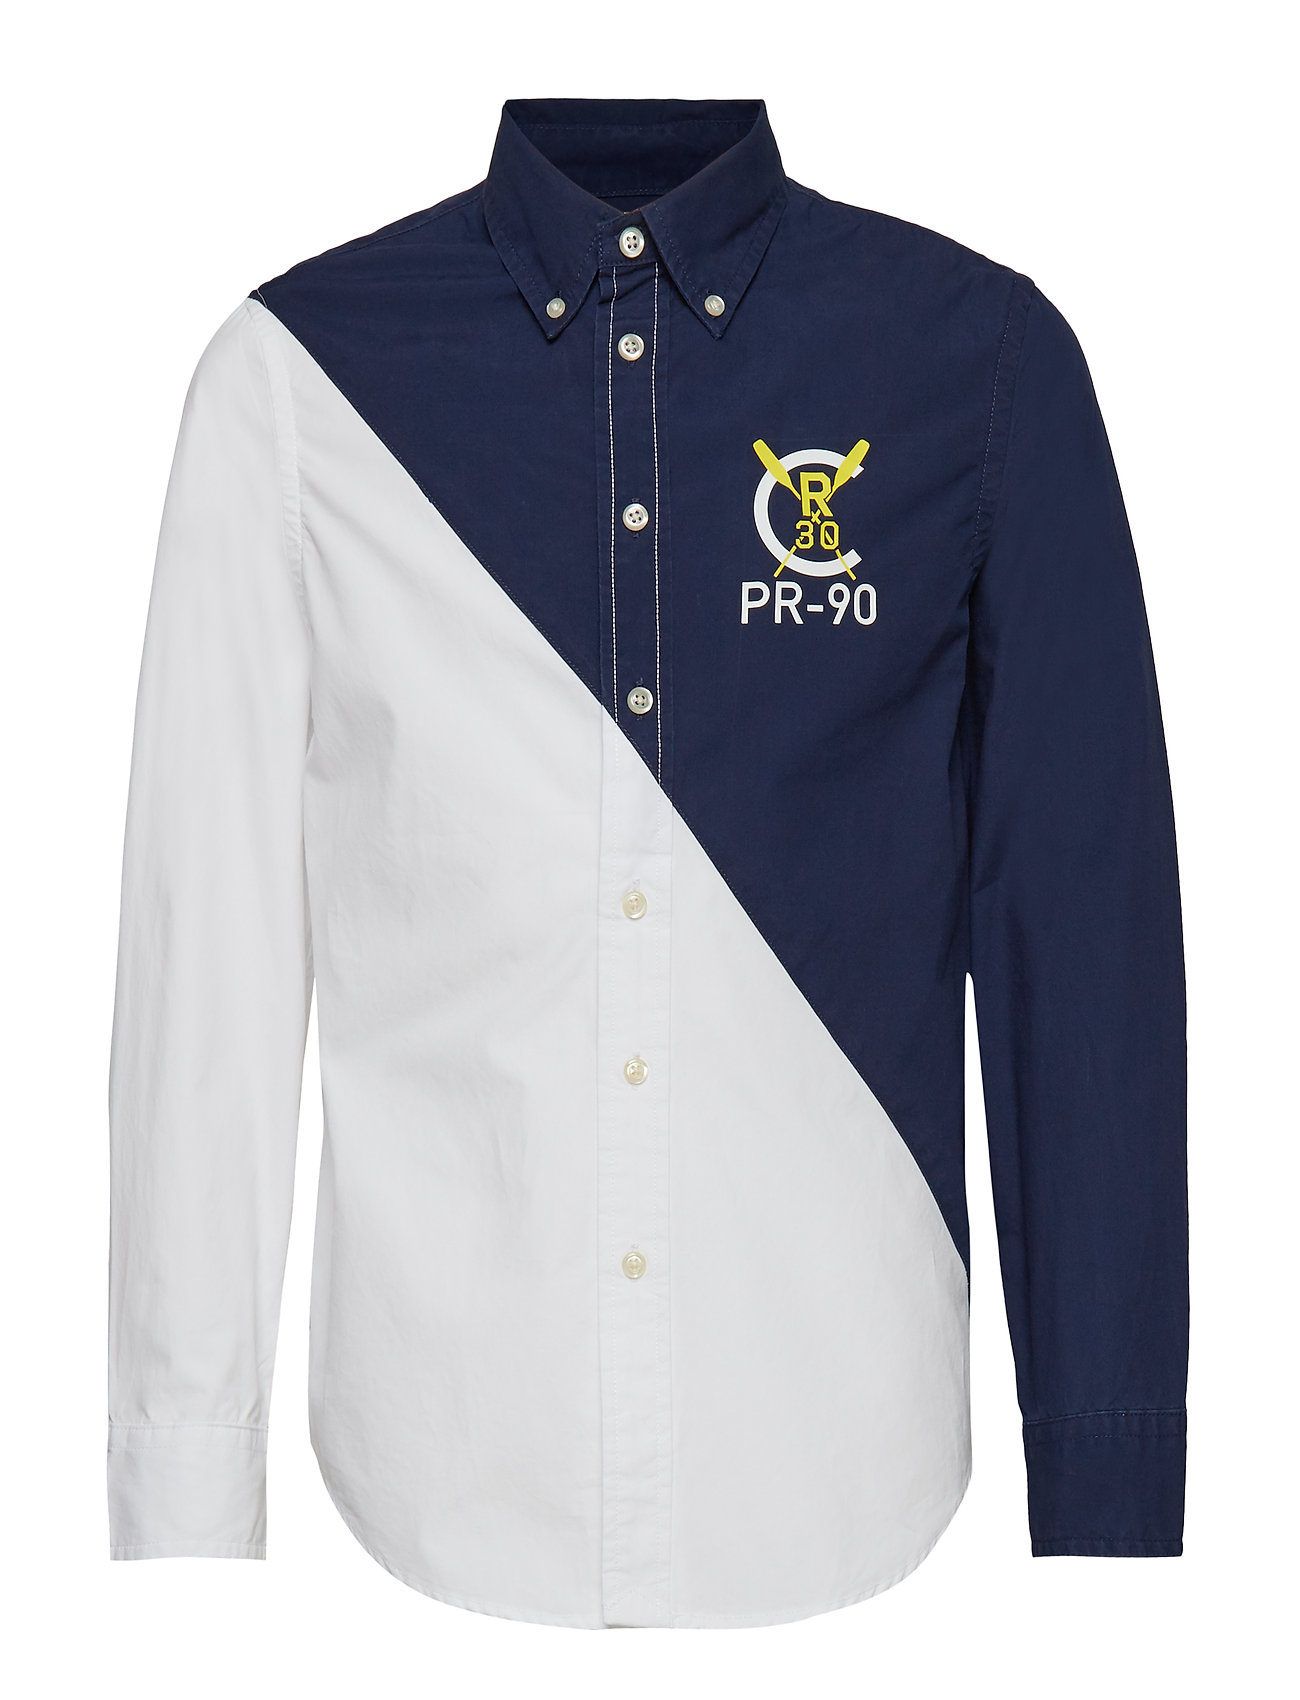 Ralph Lauren Kids Color-Blocked Cotton Shirt - NEWPORT NAVY/WHIT